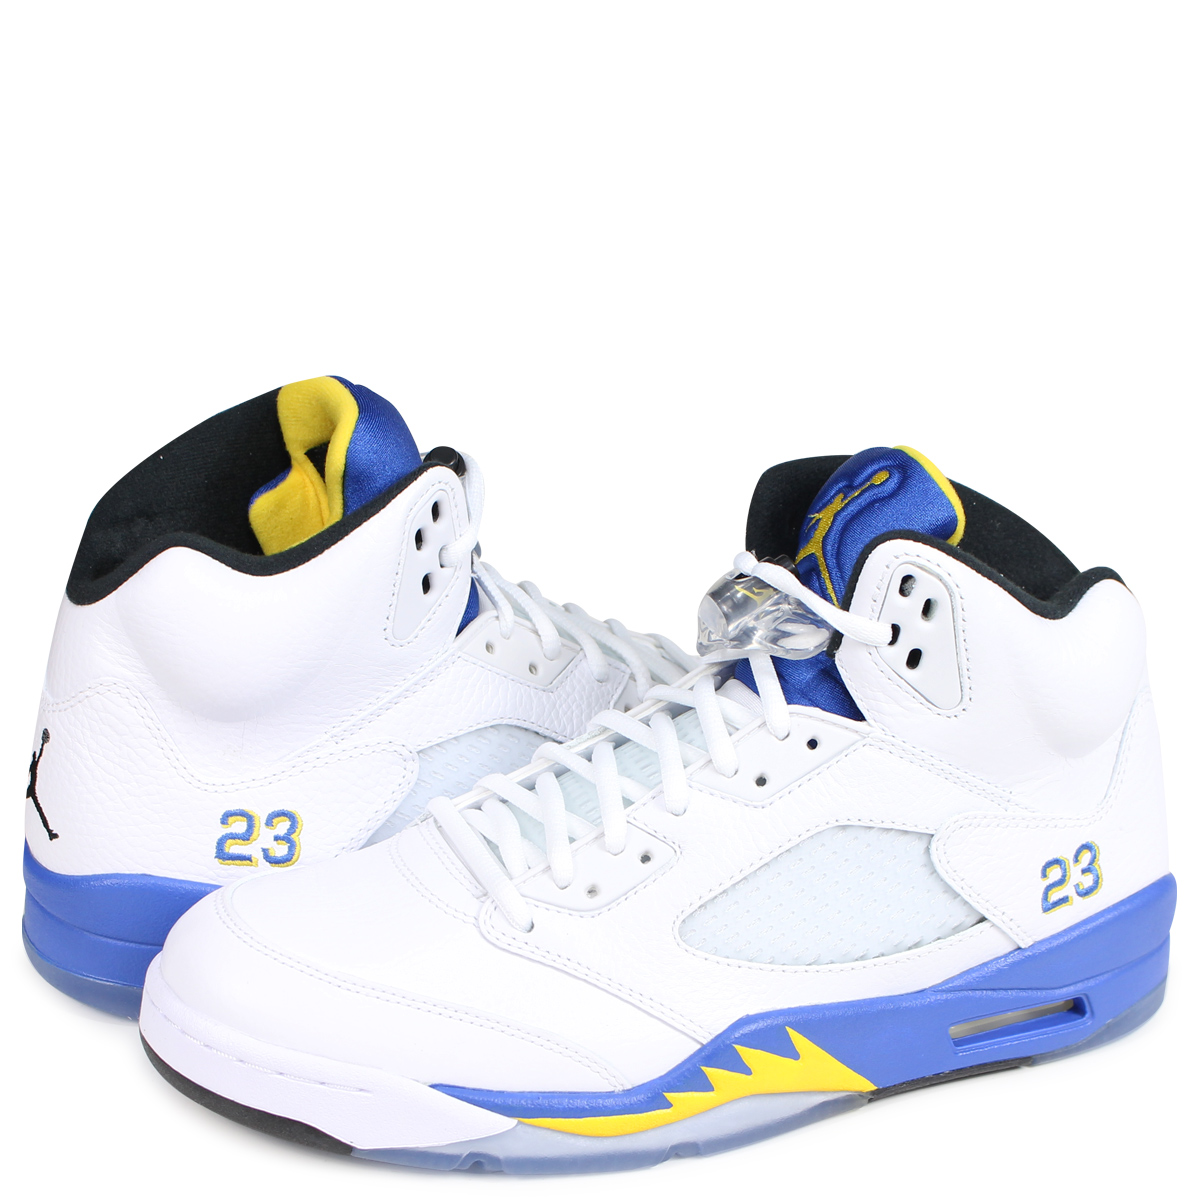 outlet store 7e80f bd7d0 NIKE AIR JORDAN 5 RETRO LANEY Nike Air Jordan 5 nostalgic sneakers men  136,027-189 white  1810